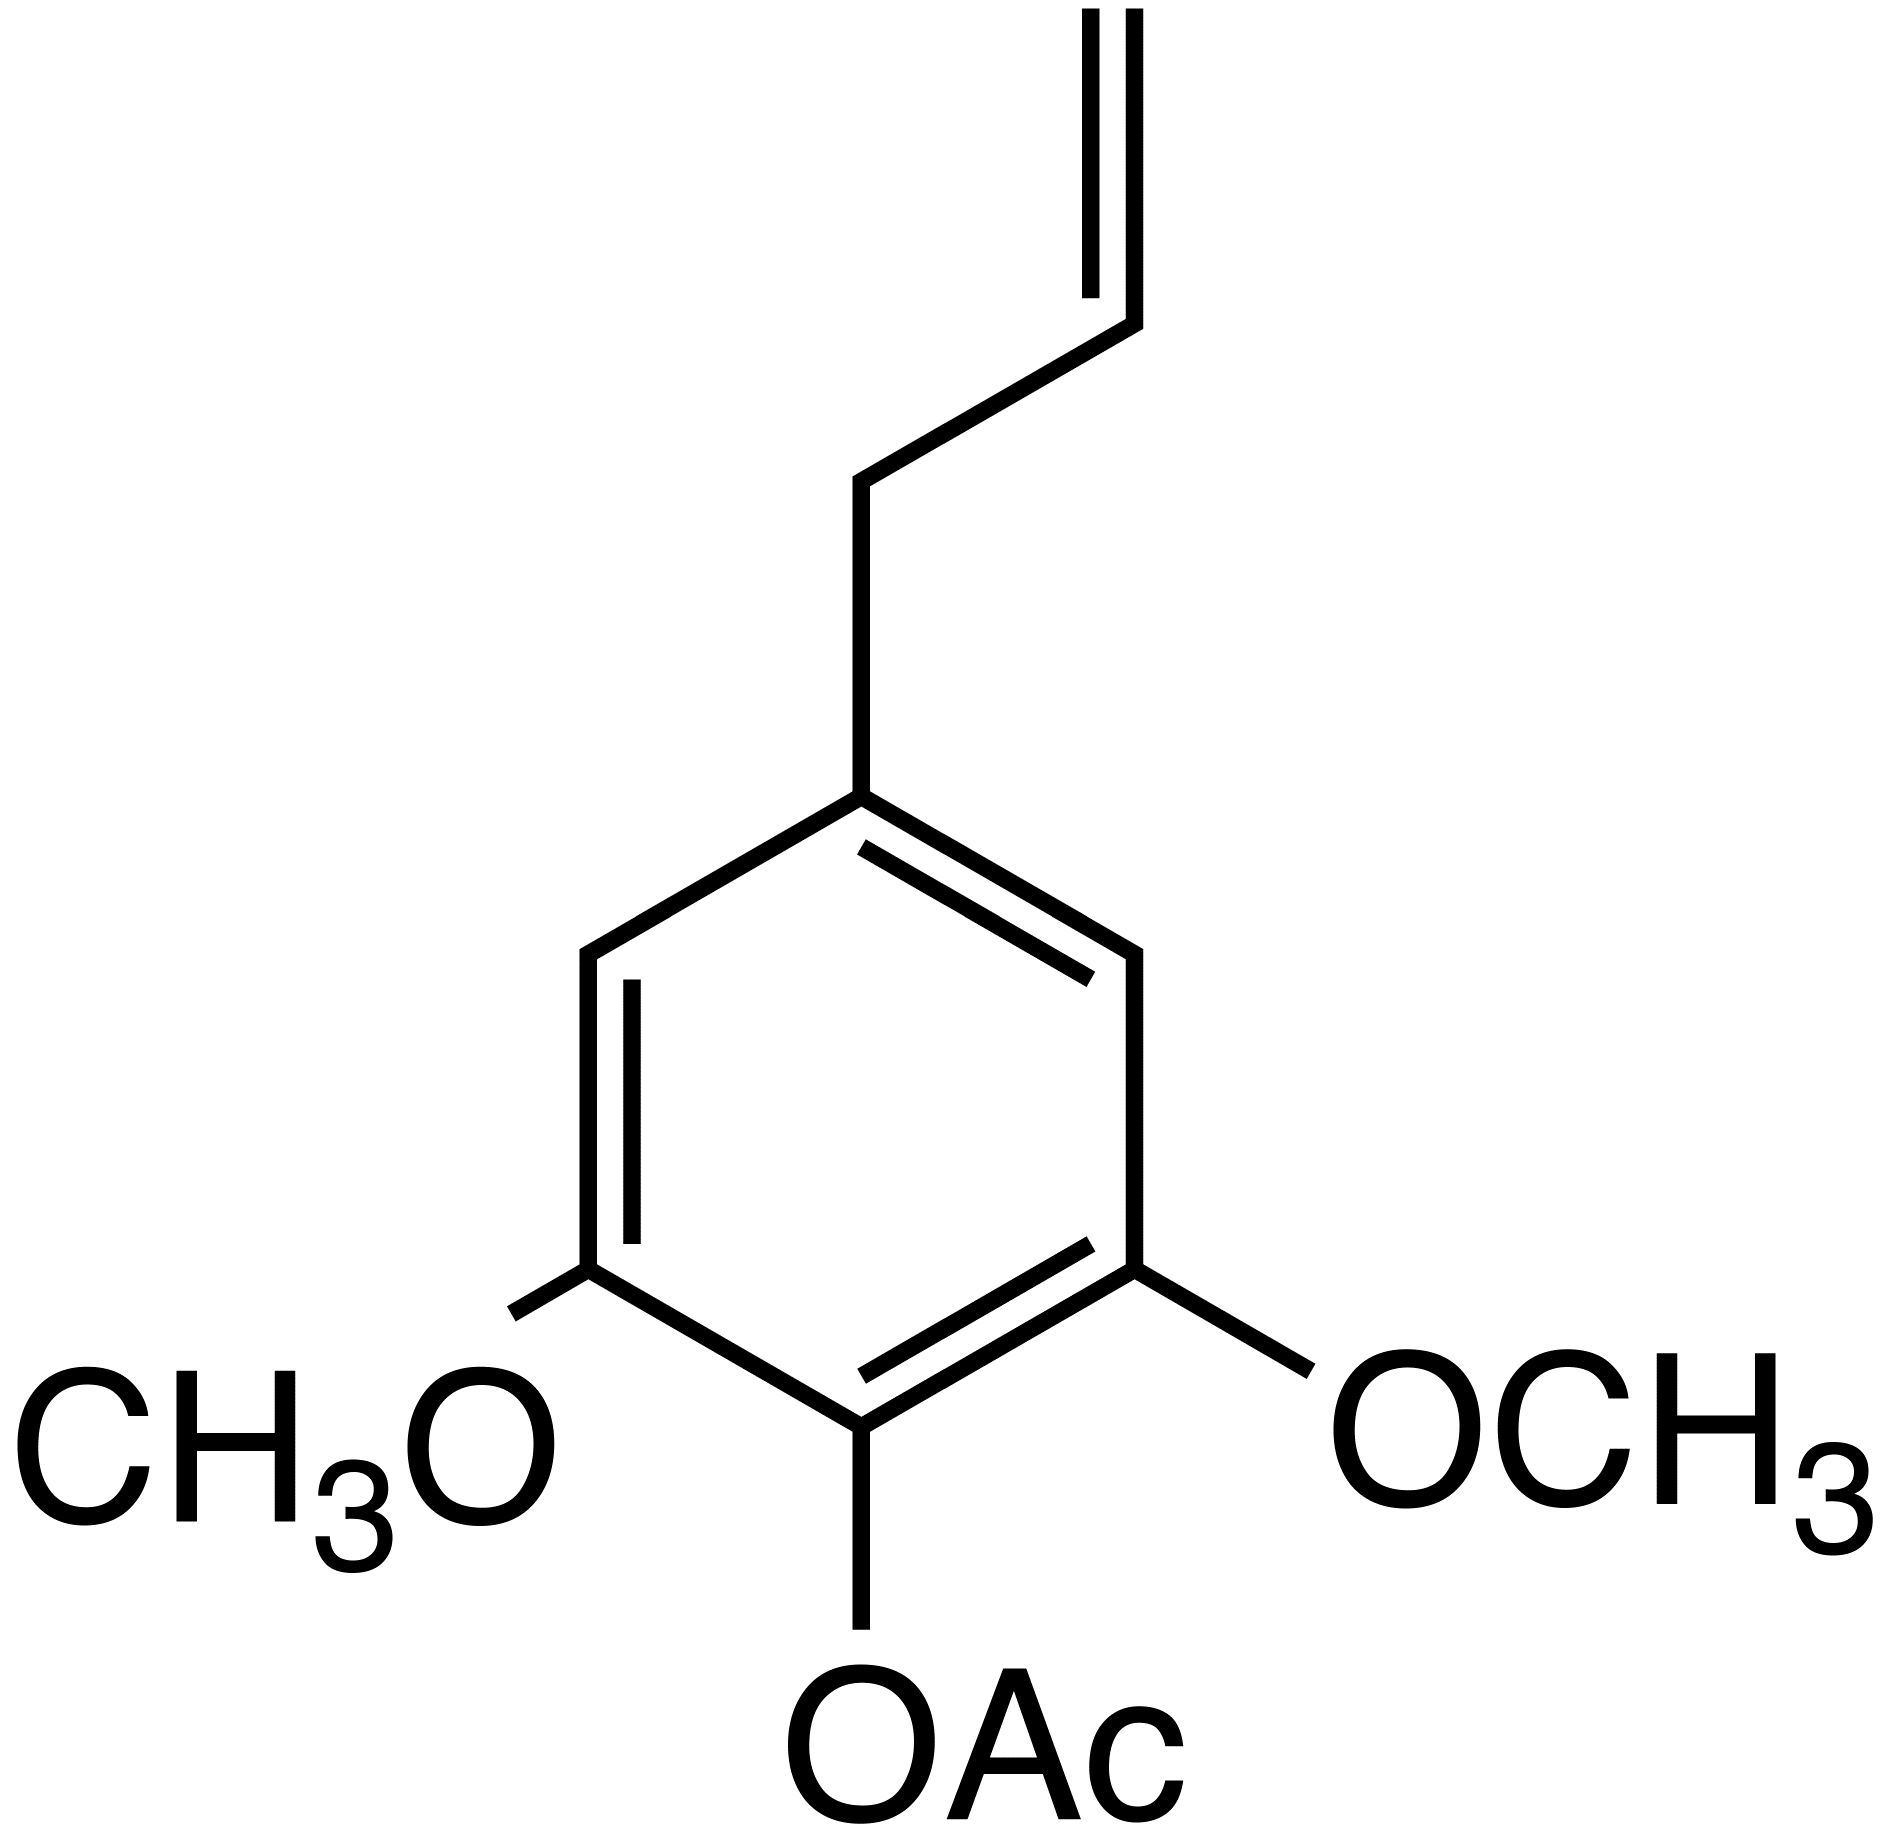 1-(3,5-dimethoxy-4-acetoxyphenyl)-2-propene image